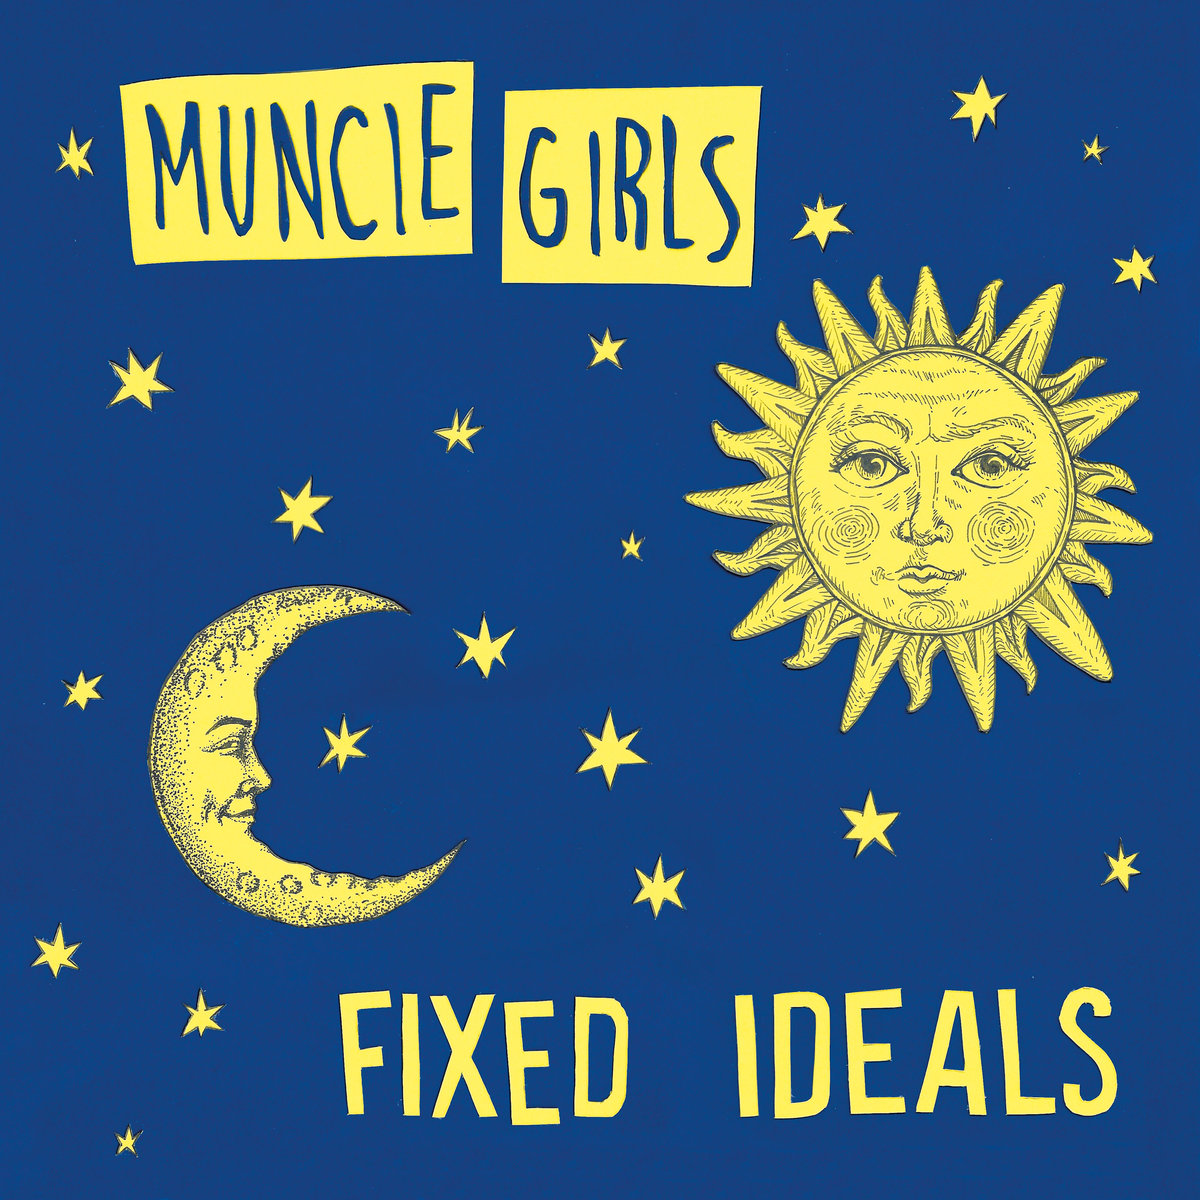 Muncie Girls Fixed Ideals Review For Northern Transmissions